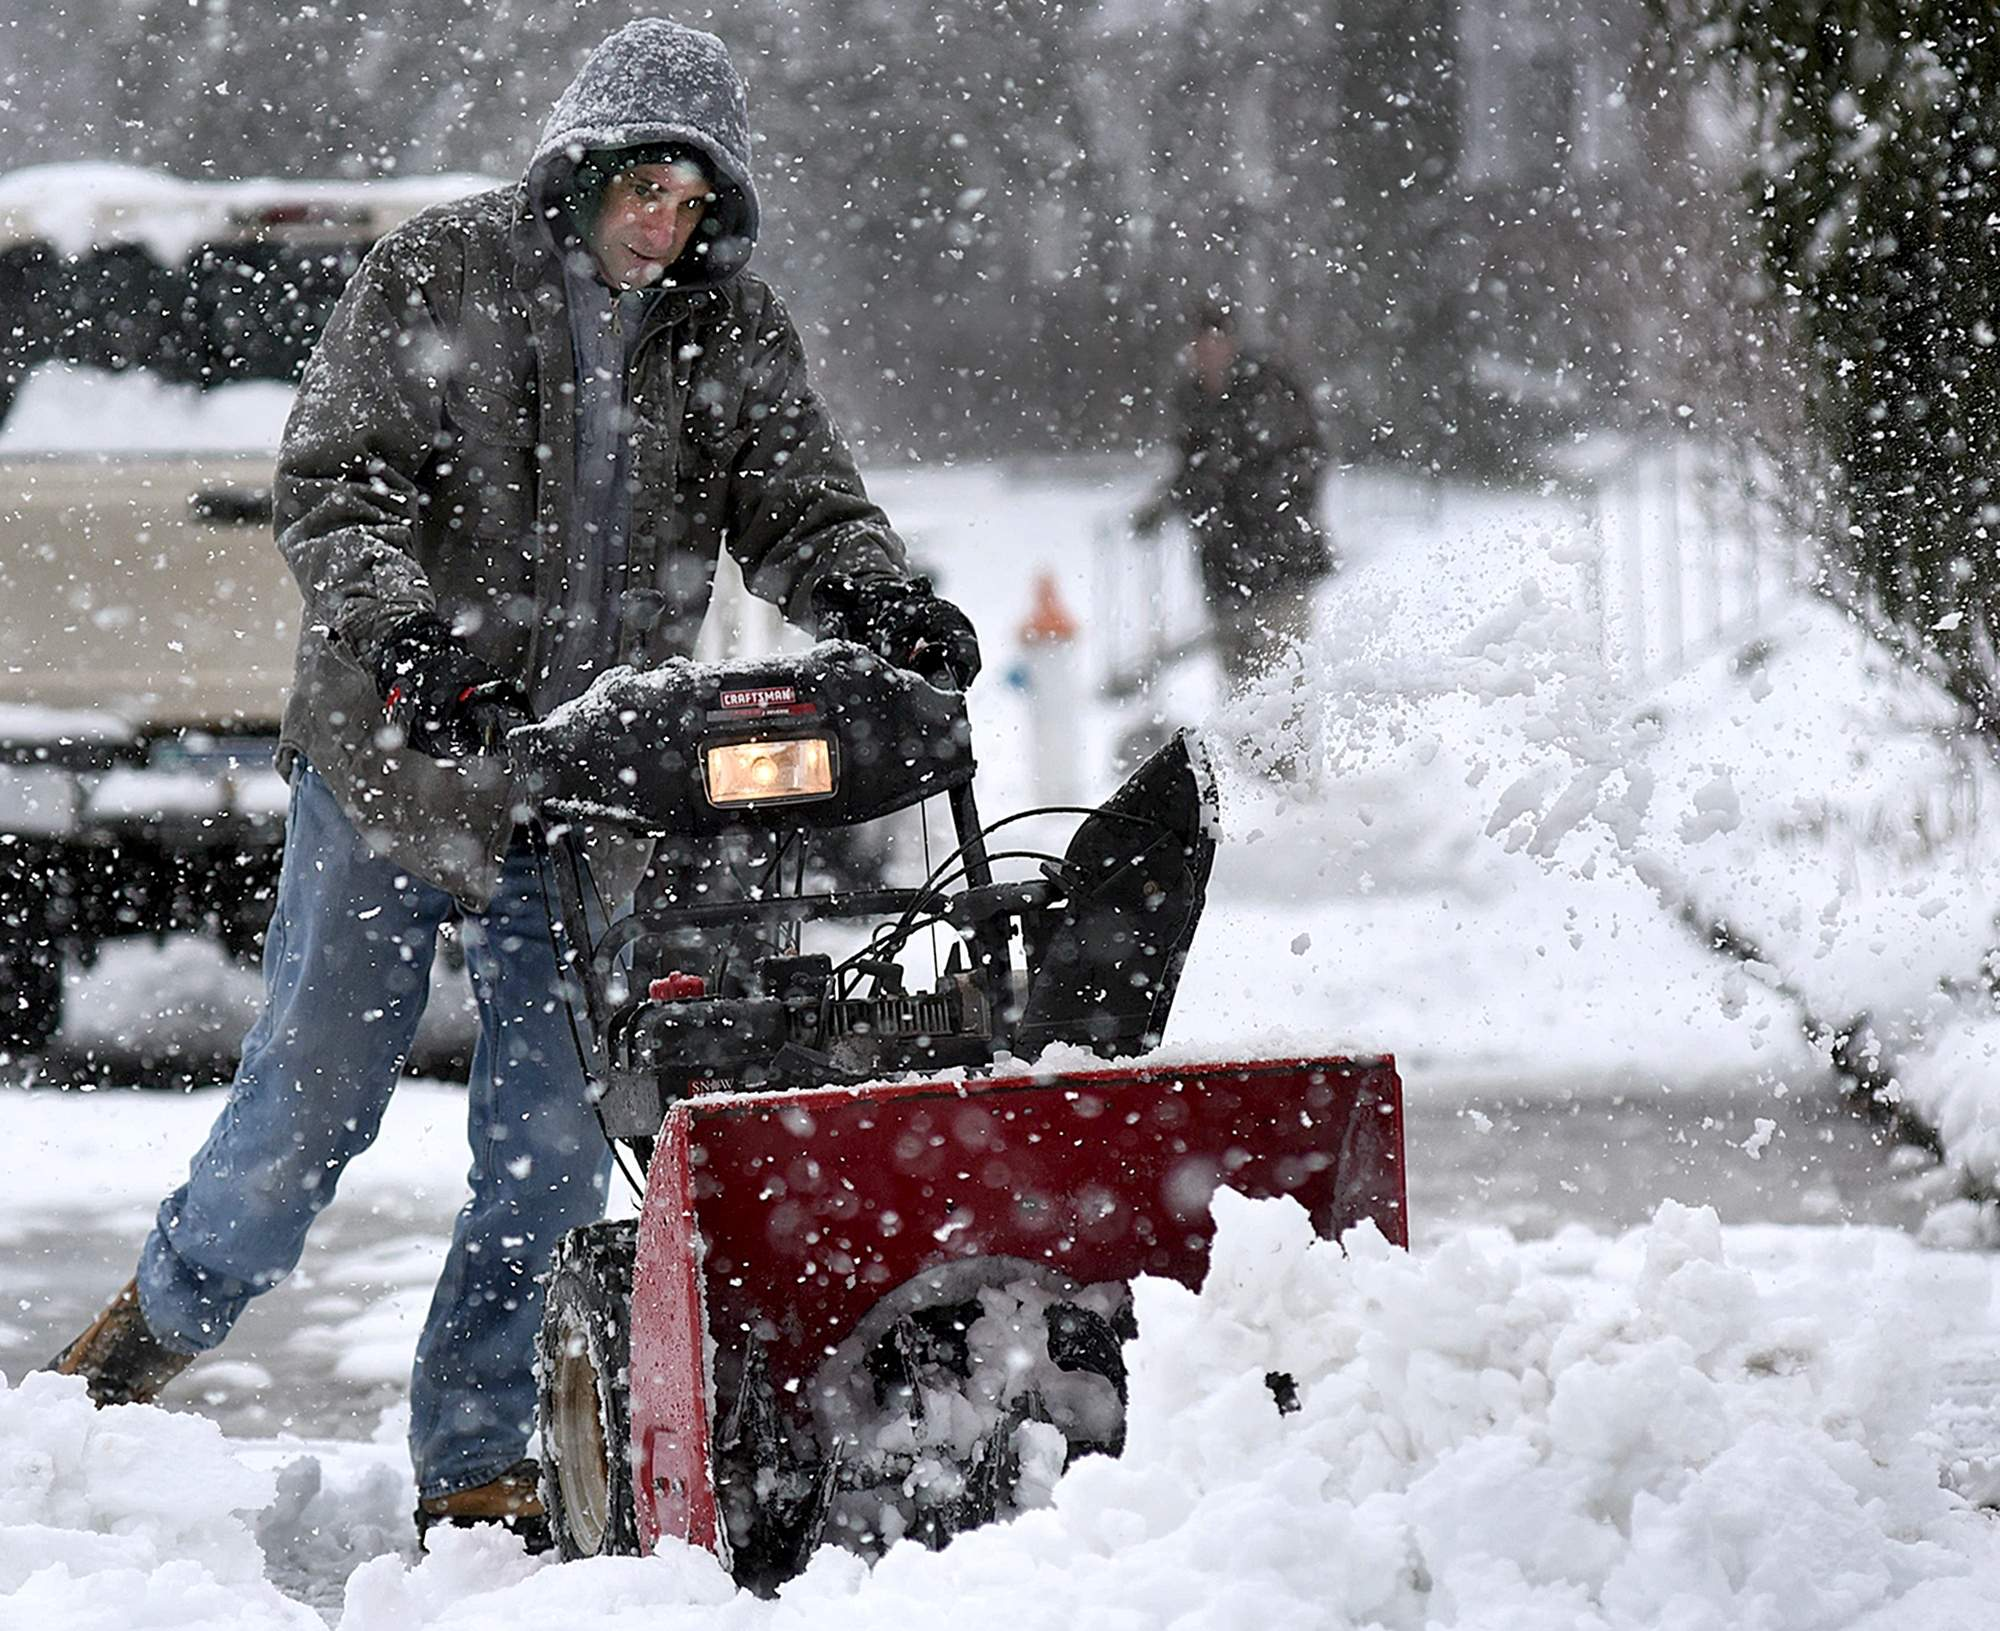 Josh Heron clears the sidewalk in front of his neighbor's place with a snowblower in Perkasie during the second snow storm to hit the area in the past week. on Wednesday, March 7, 2018. [ART GENTILE / STAFF PHOTOJOURNALIST]